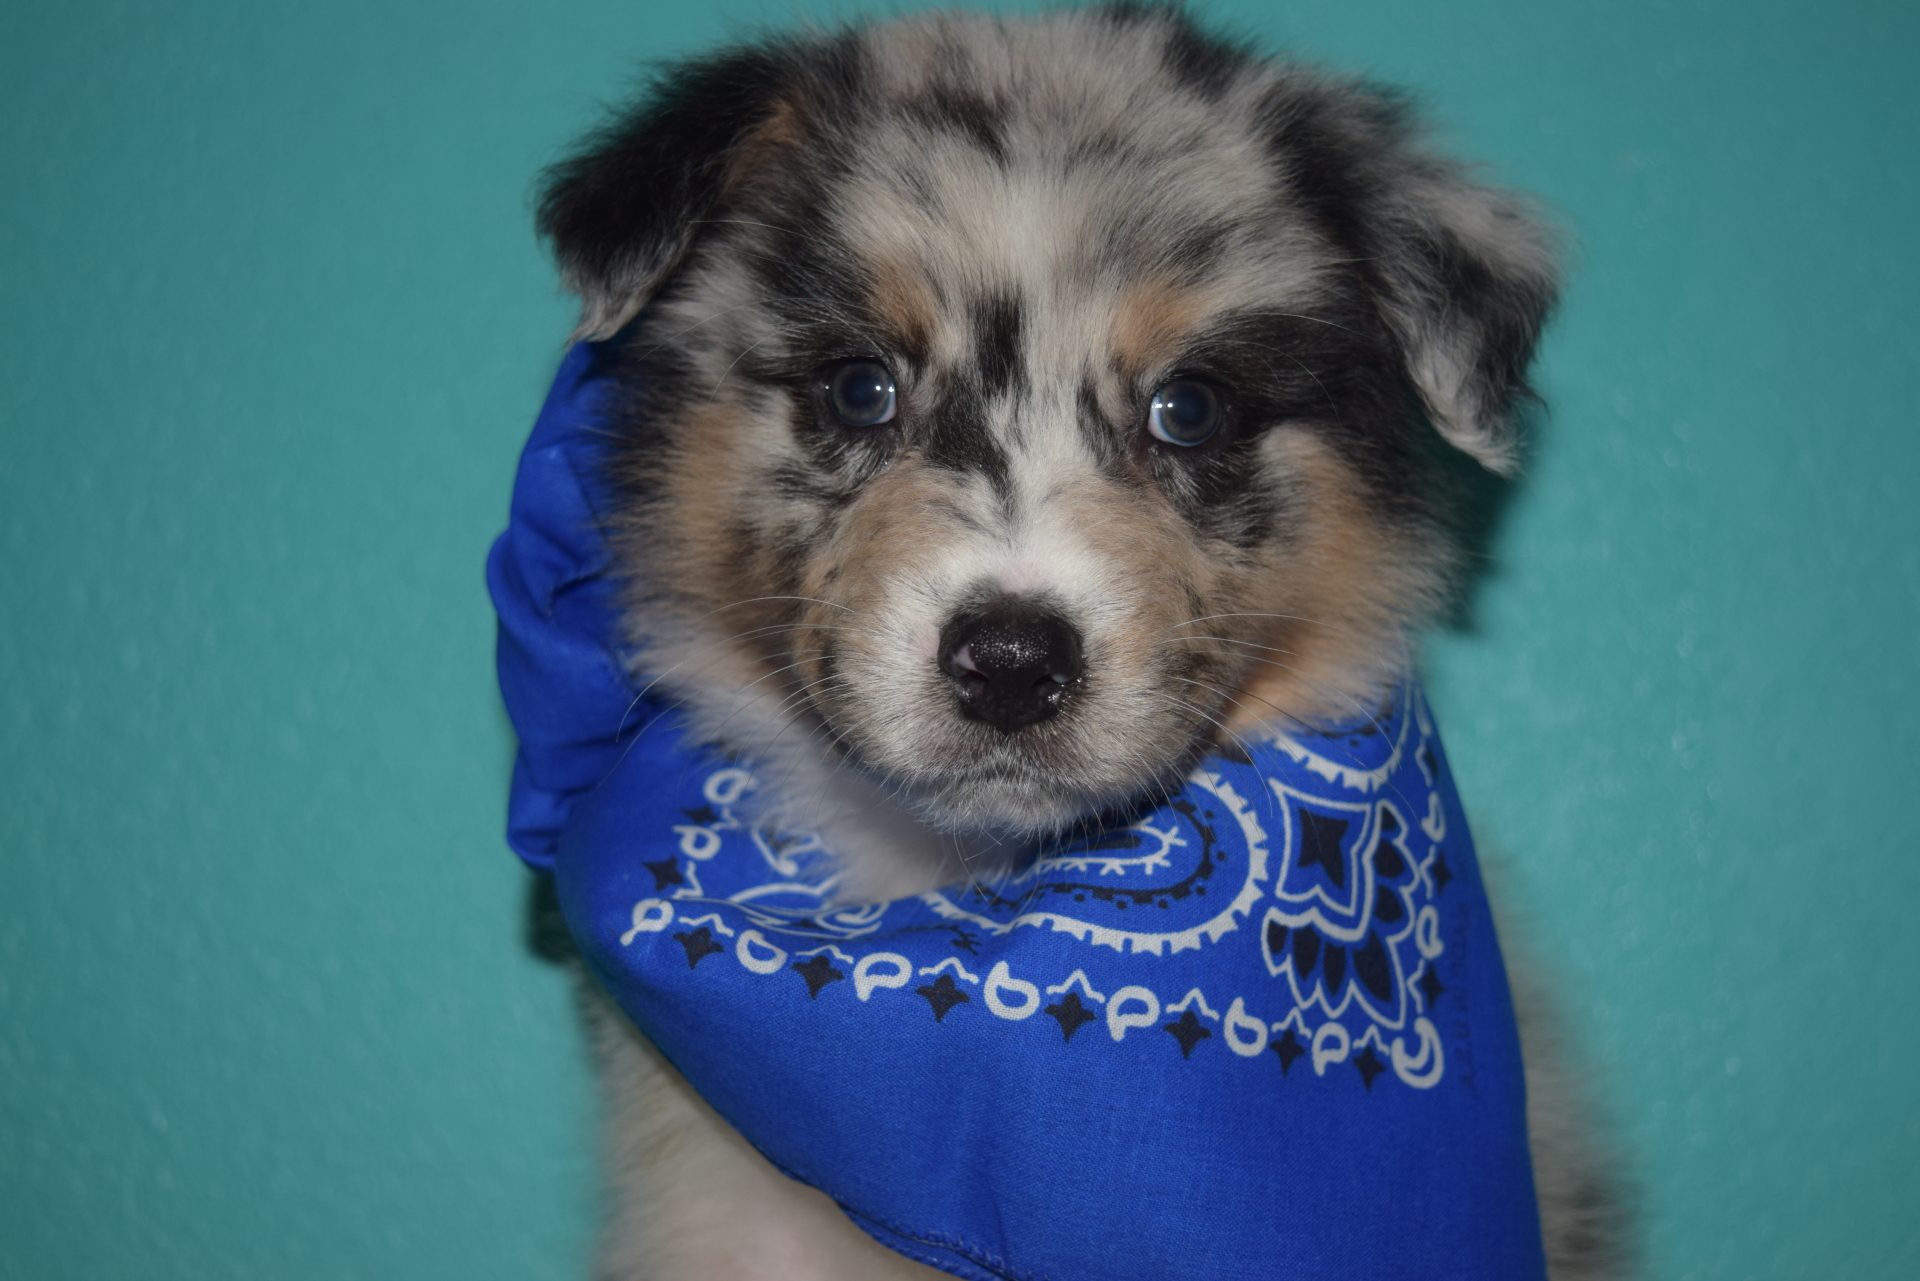 Blue Merle Male Australian Shepherd Puppy #2 1 day